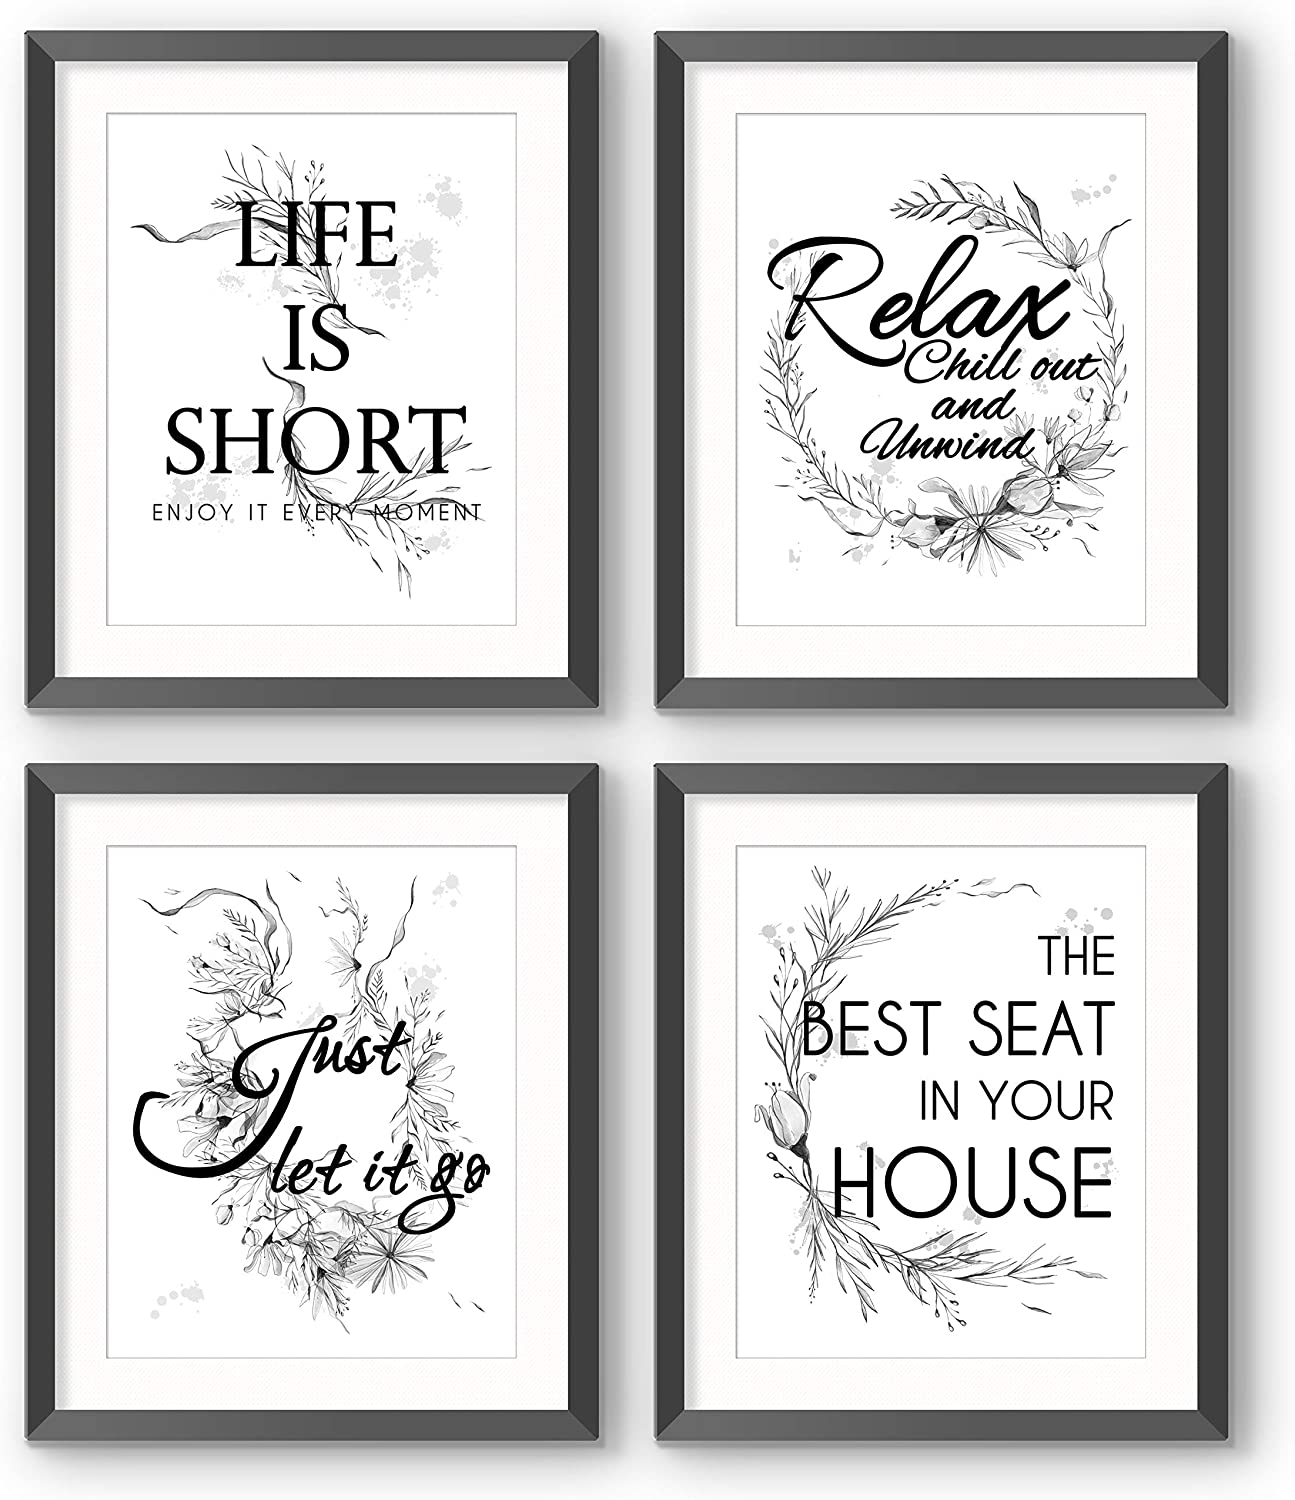 Wall Decor Bathroom Quotes Saying Prints, 8x10 Textured Watercolor Wild Foliage Black White Pictures Words Poster, Home Office Toilet Living Room Dining (Frame Not Included)